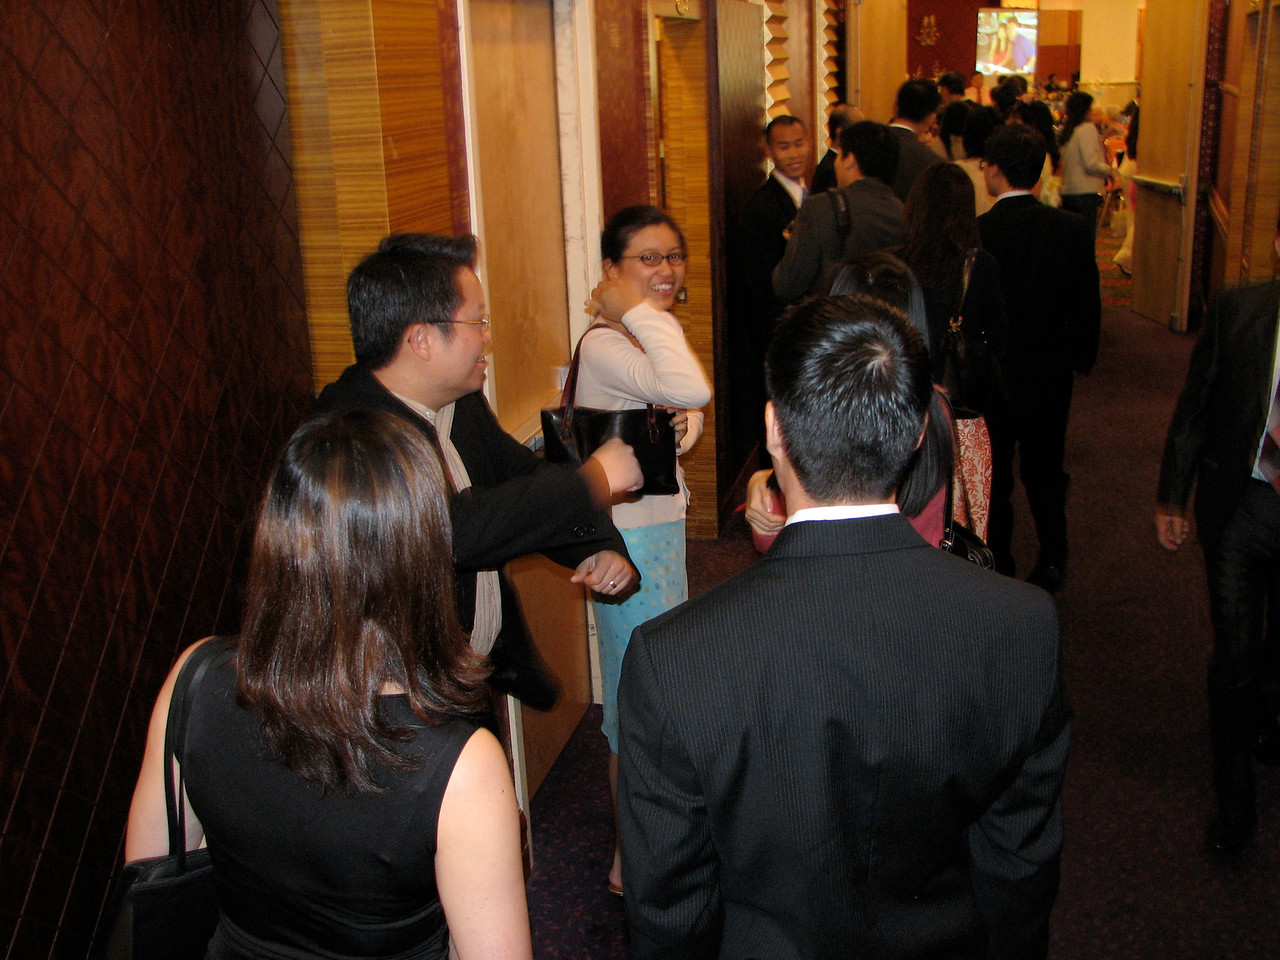 2007 05 19 Sat - Reception - EFC-Harvest youngers waiting to get in